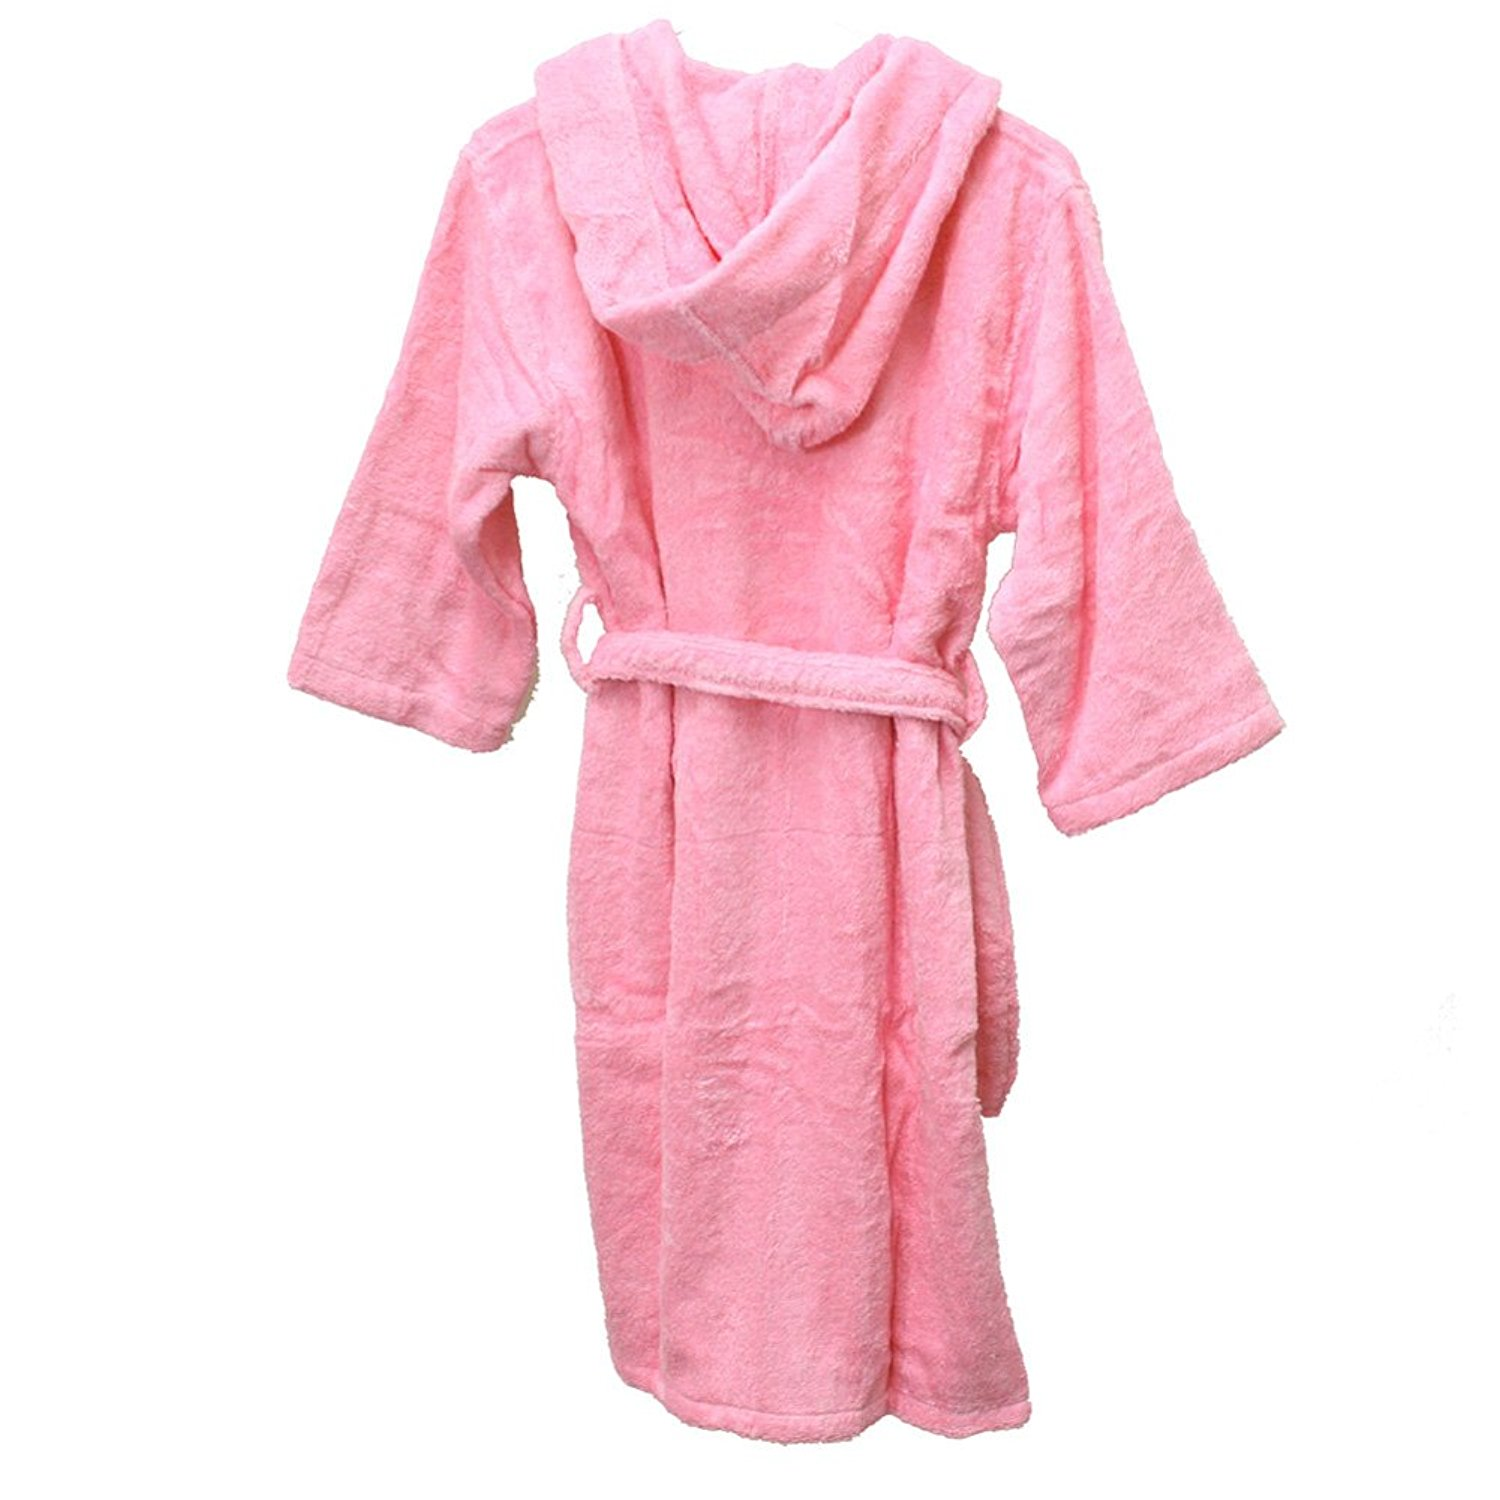 b6d3fa8f36 Get Quotations · Terry Hooded Robes for Girls and Boys